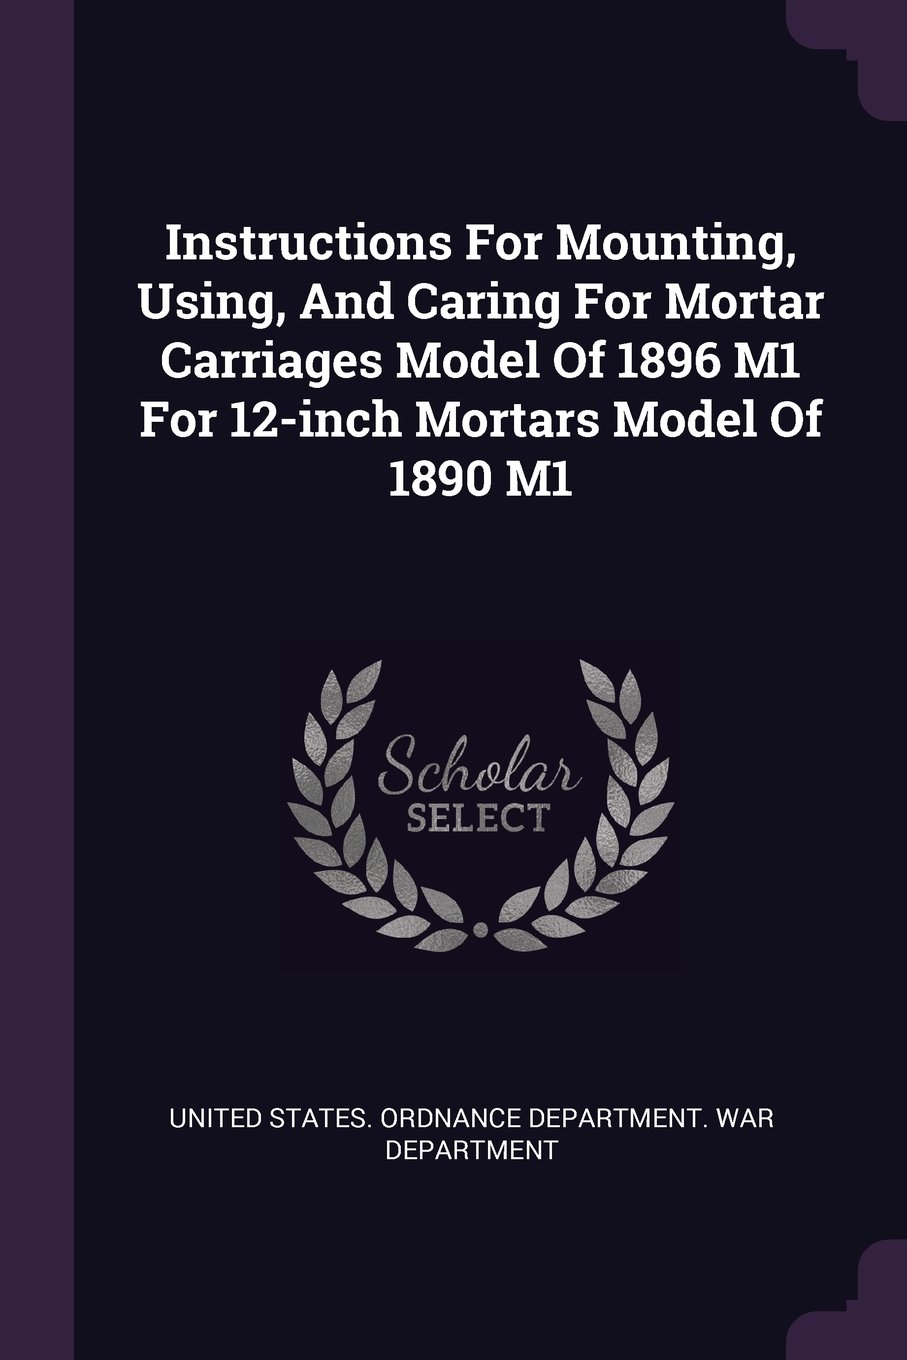 Instructions For Mounting Using And Caring For Mortar Carriages